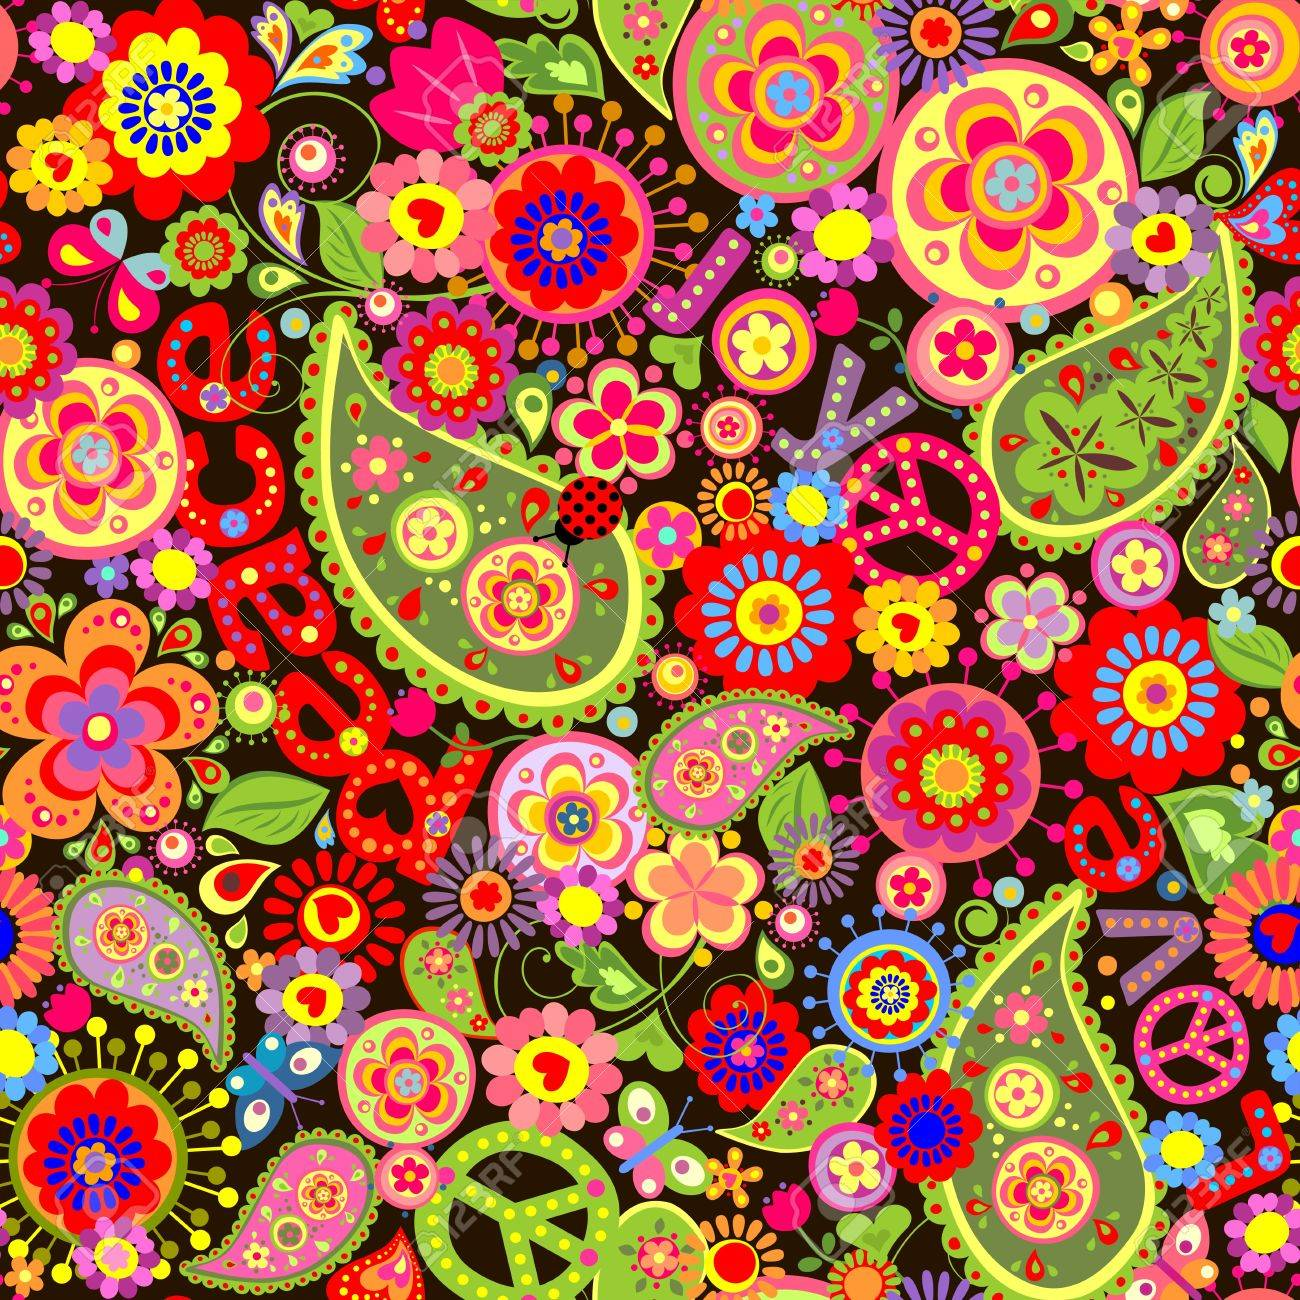 Hippie wallpaper with colorful flower print Stock Vector - 51518174